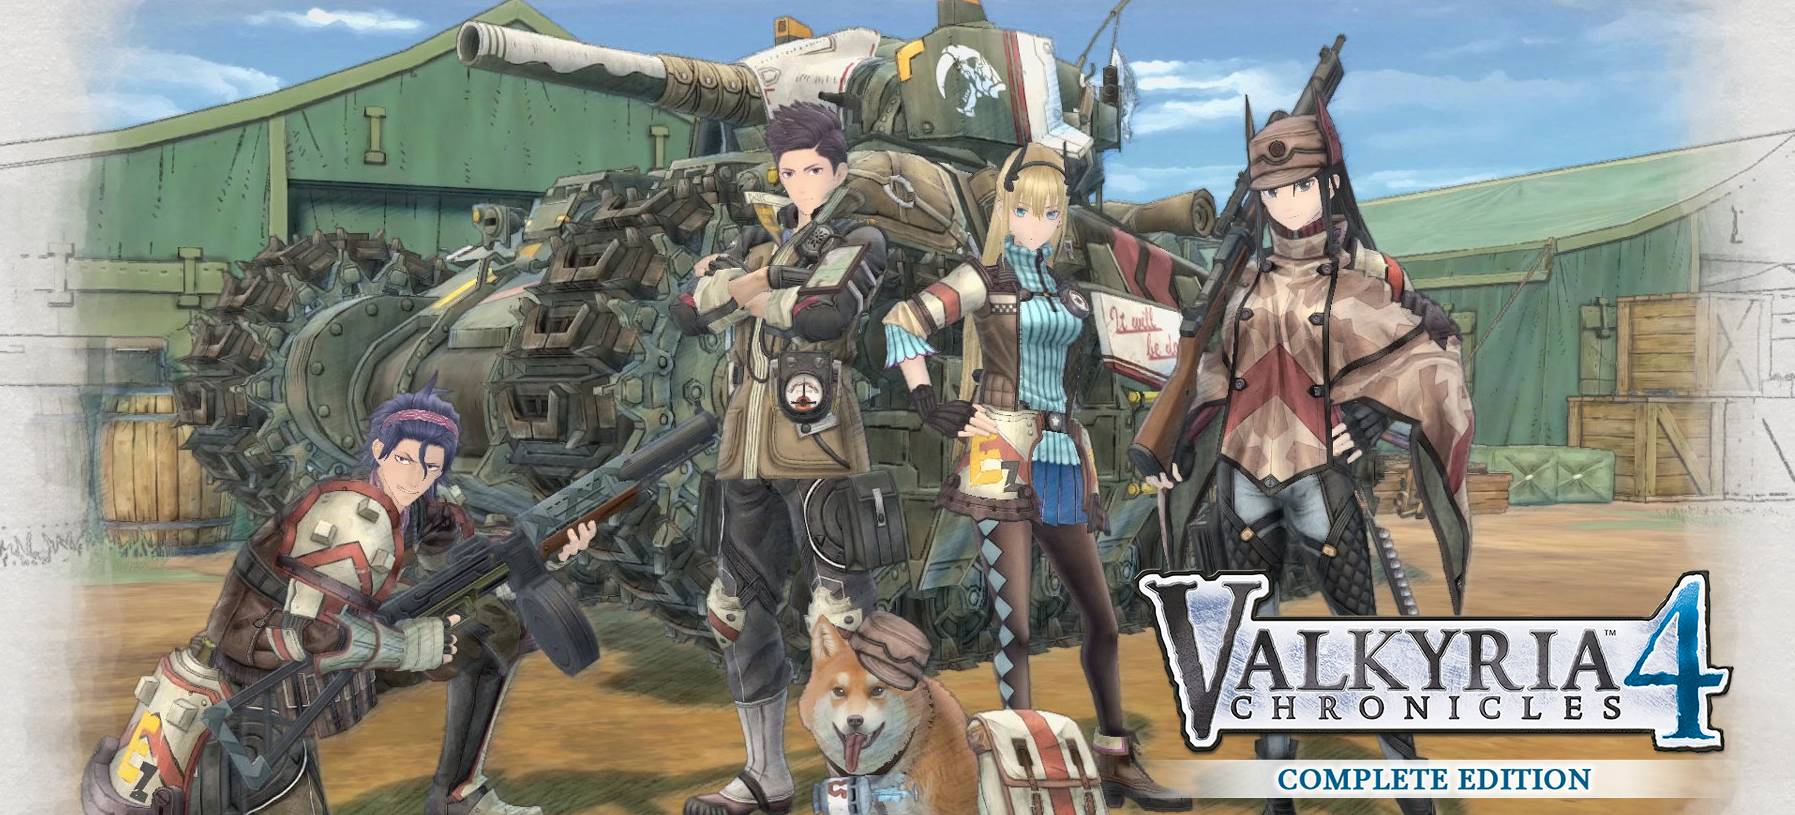 Valkyria Chronicles 4 Complete Edition Steam Update Now Includes All DLC